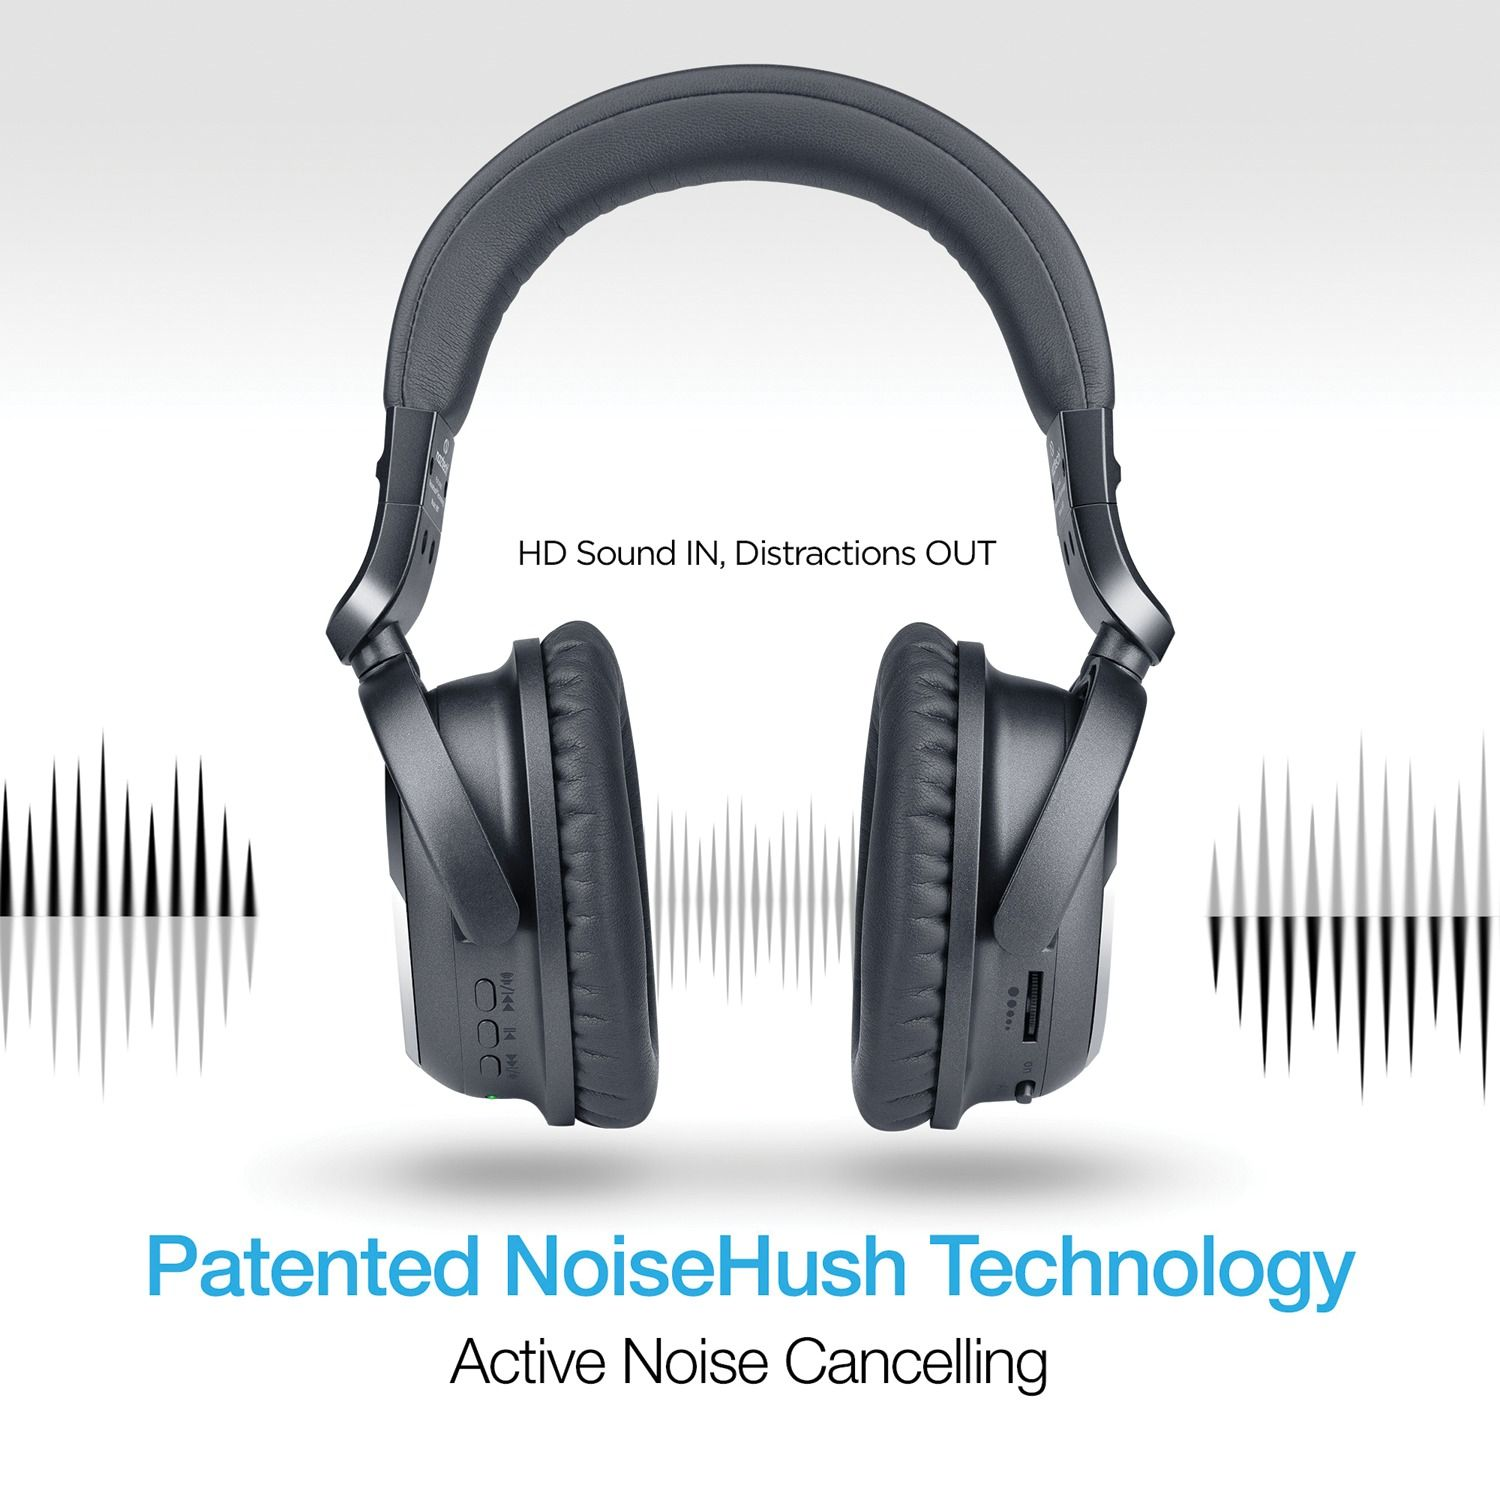 Best headphones for the gym noise cancelling headphones